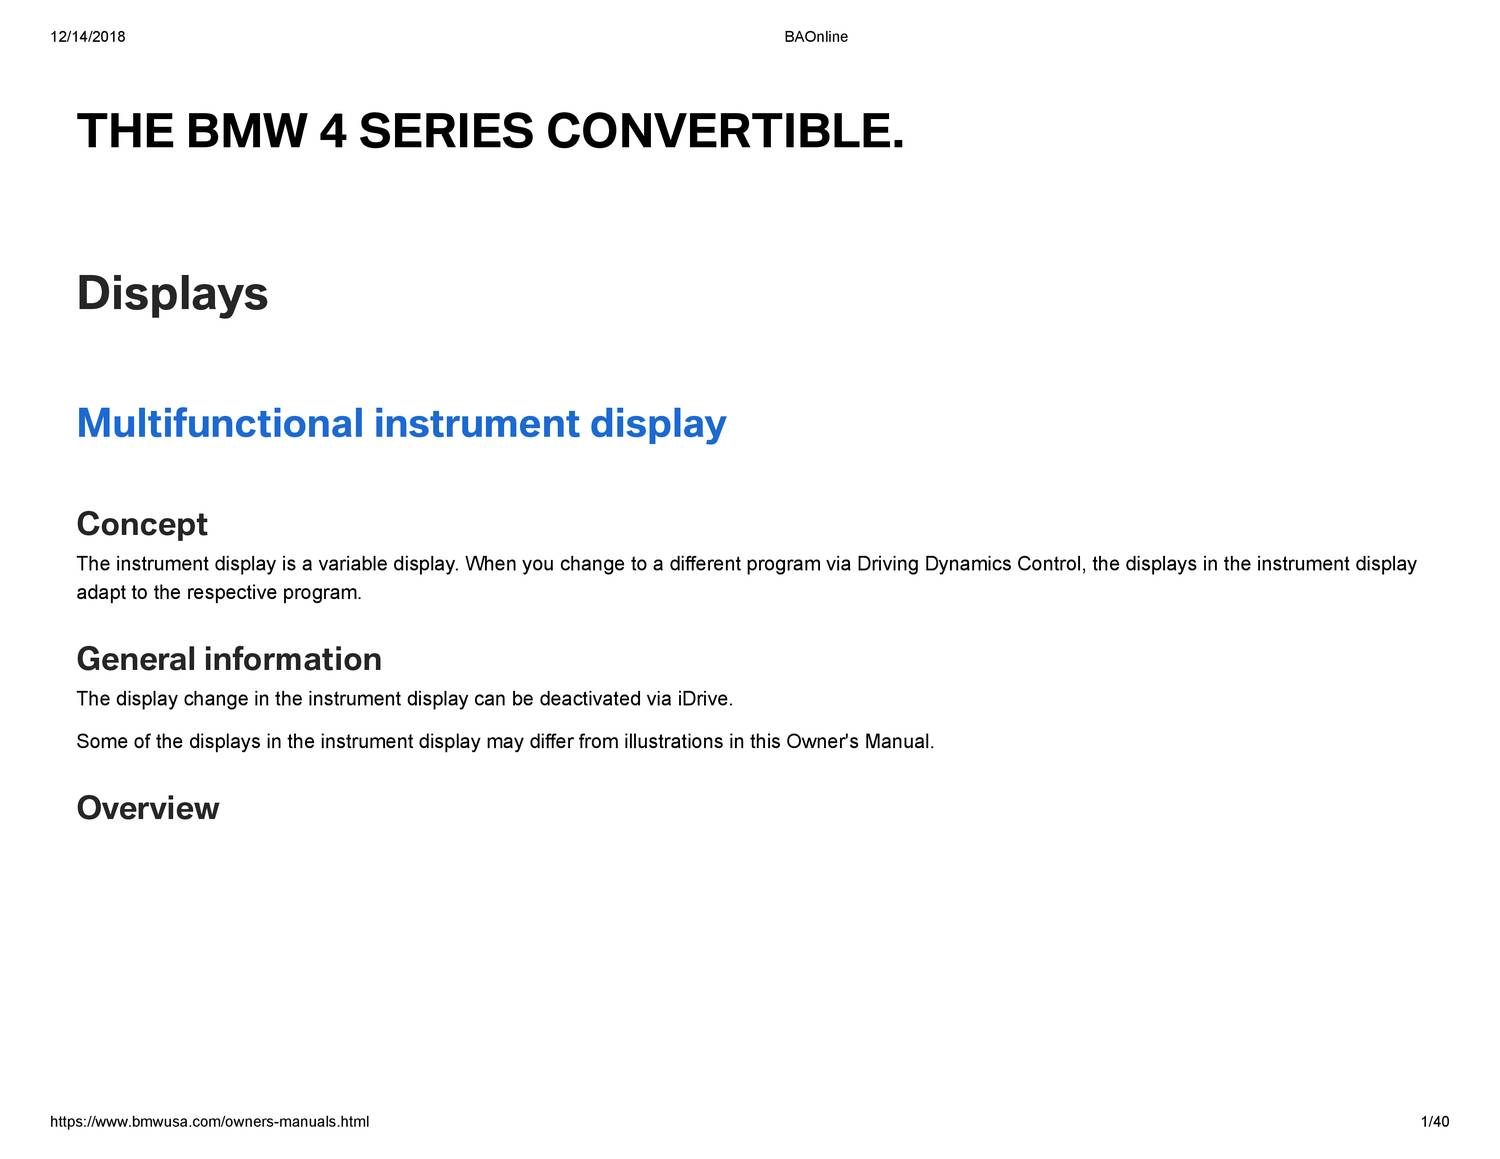 BMW Owner's Manuals - BMW USA.pdf   DocDroid